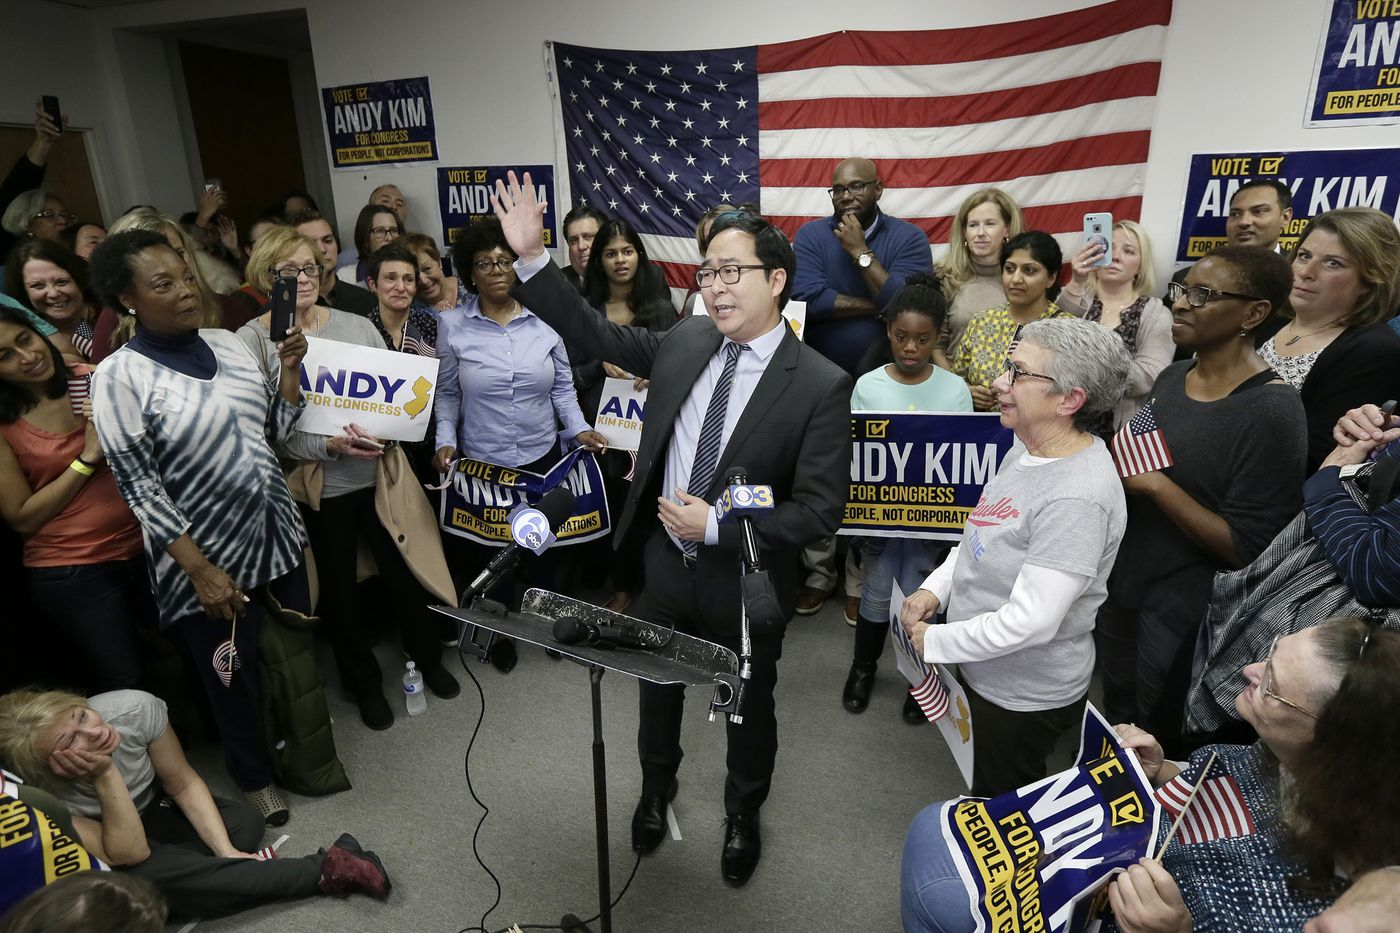 Democrat Andy Kim claims win over U.S. Rep. Tom MacArthur in N.J.'s 3rd Congressional District